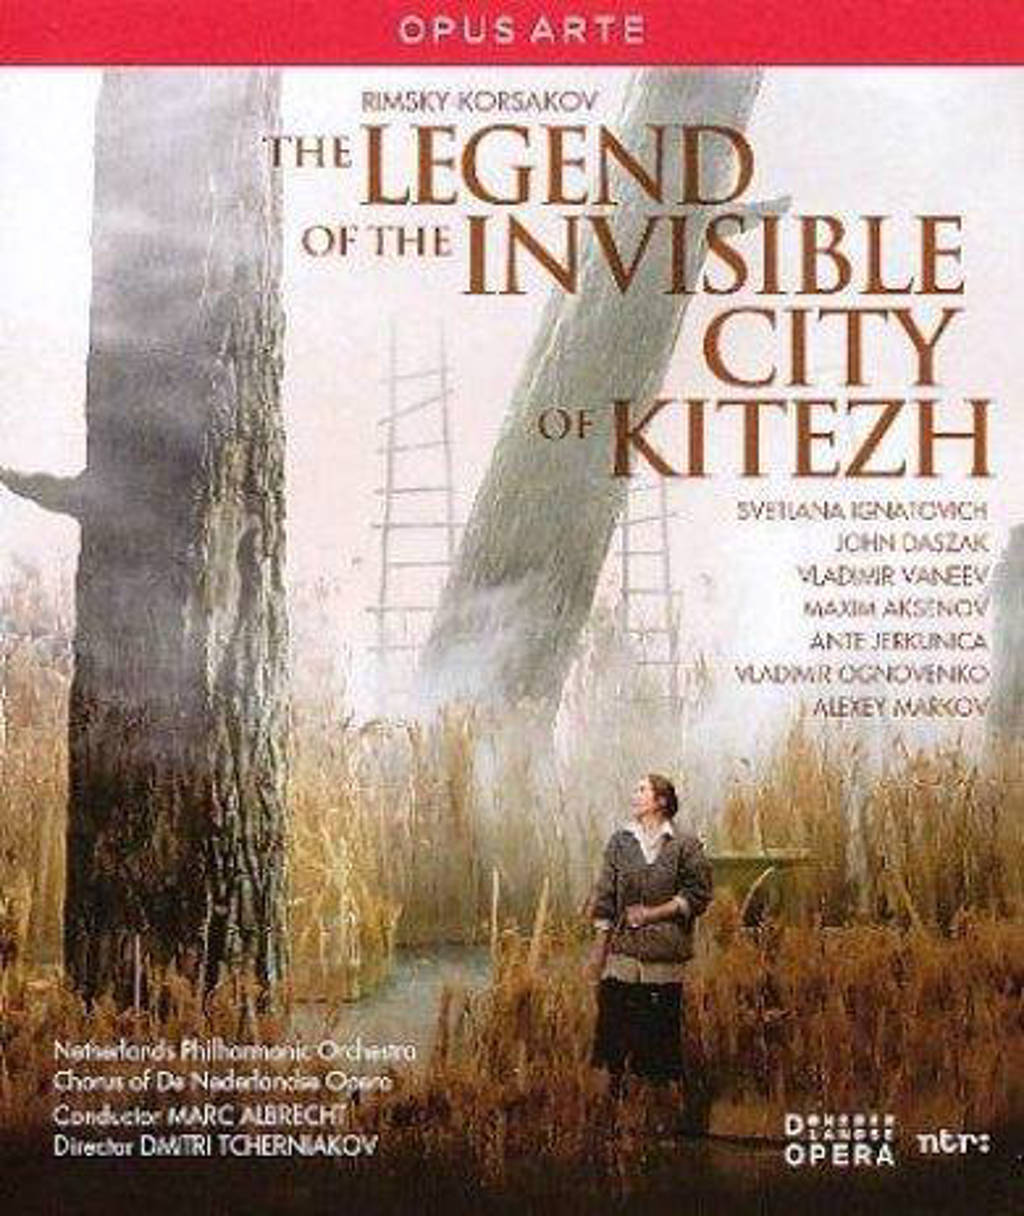 Ned. Phil. Orchestra Ned. Opera - Legend Of The Invisible City Kitezh (Blu-ray)